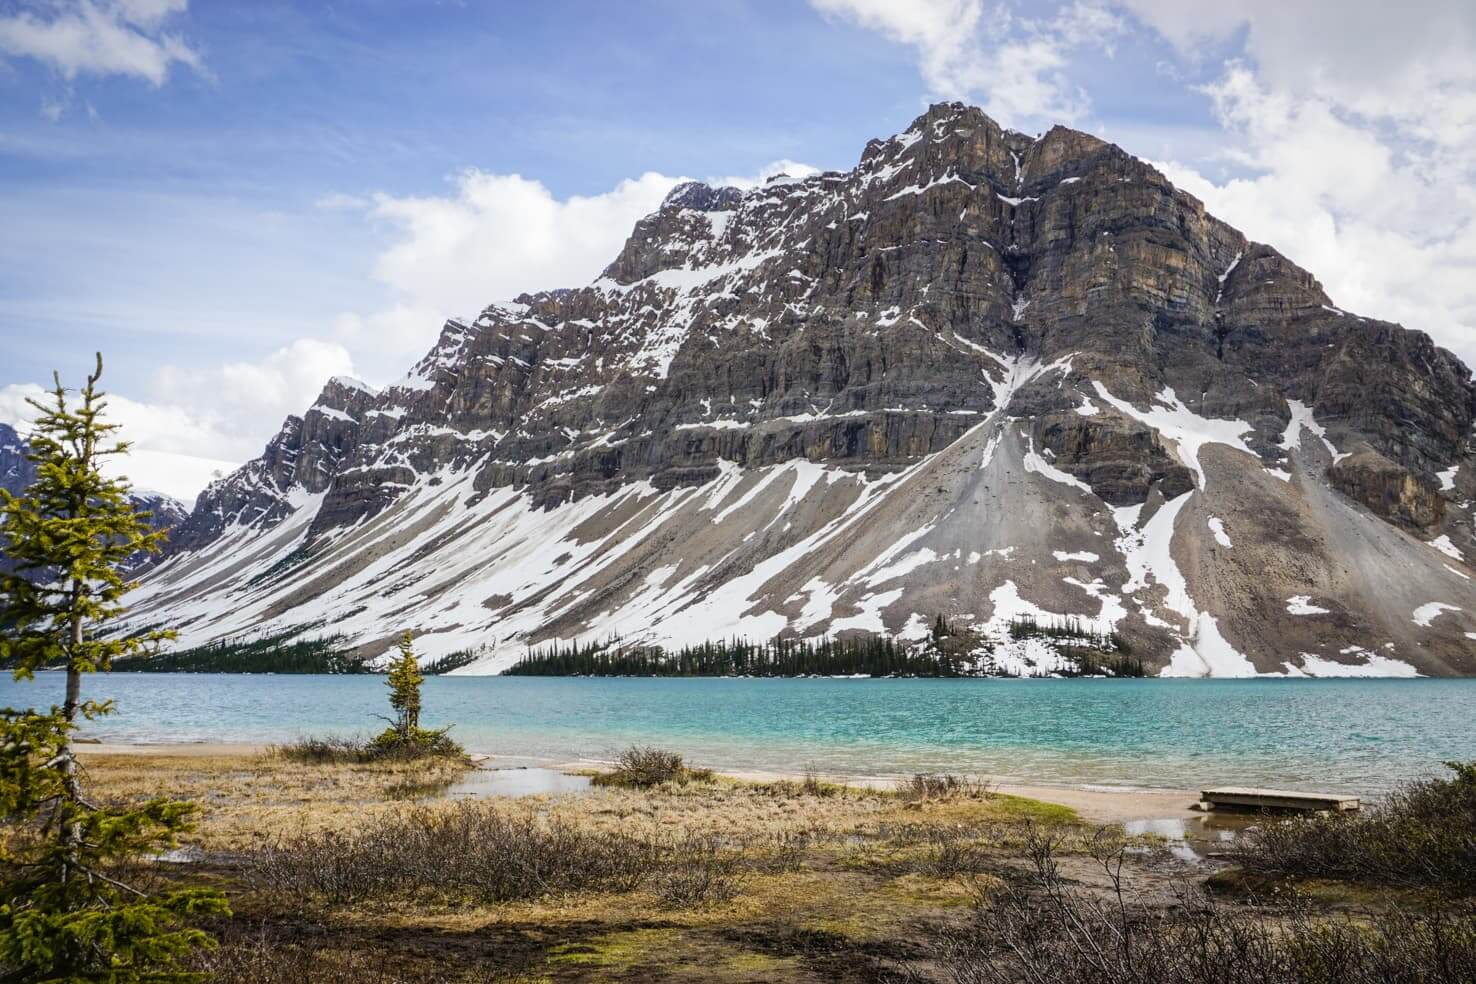 100 things to do in Banff National Park, Canada - Bow Lake